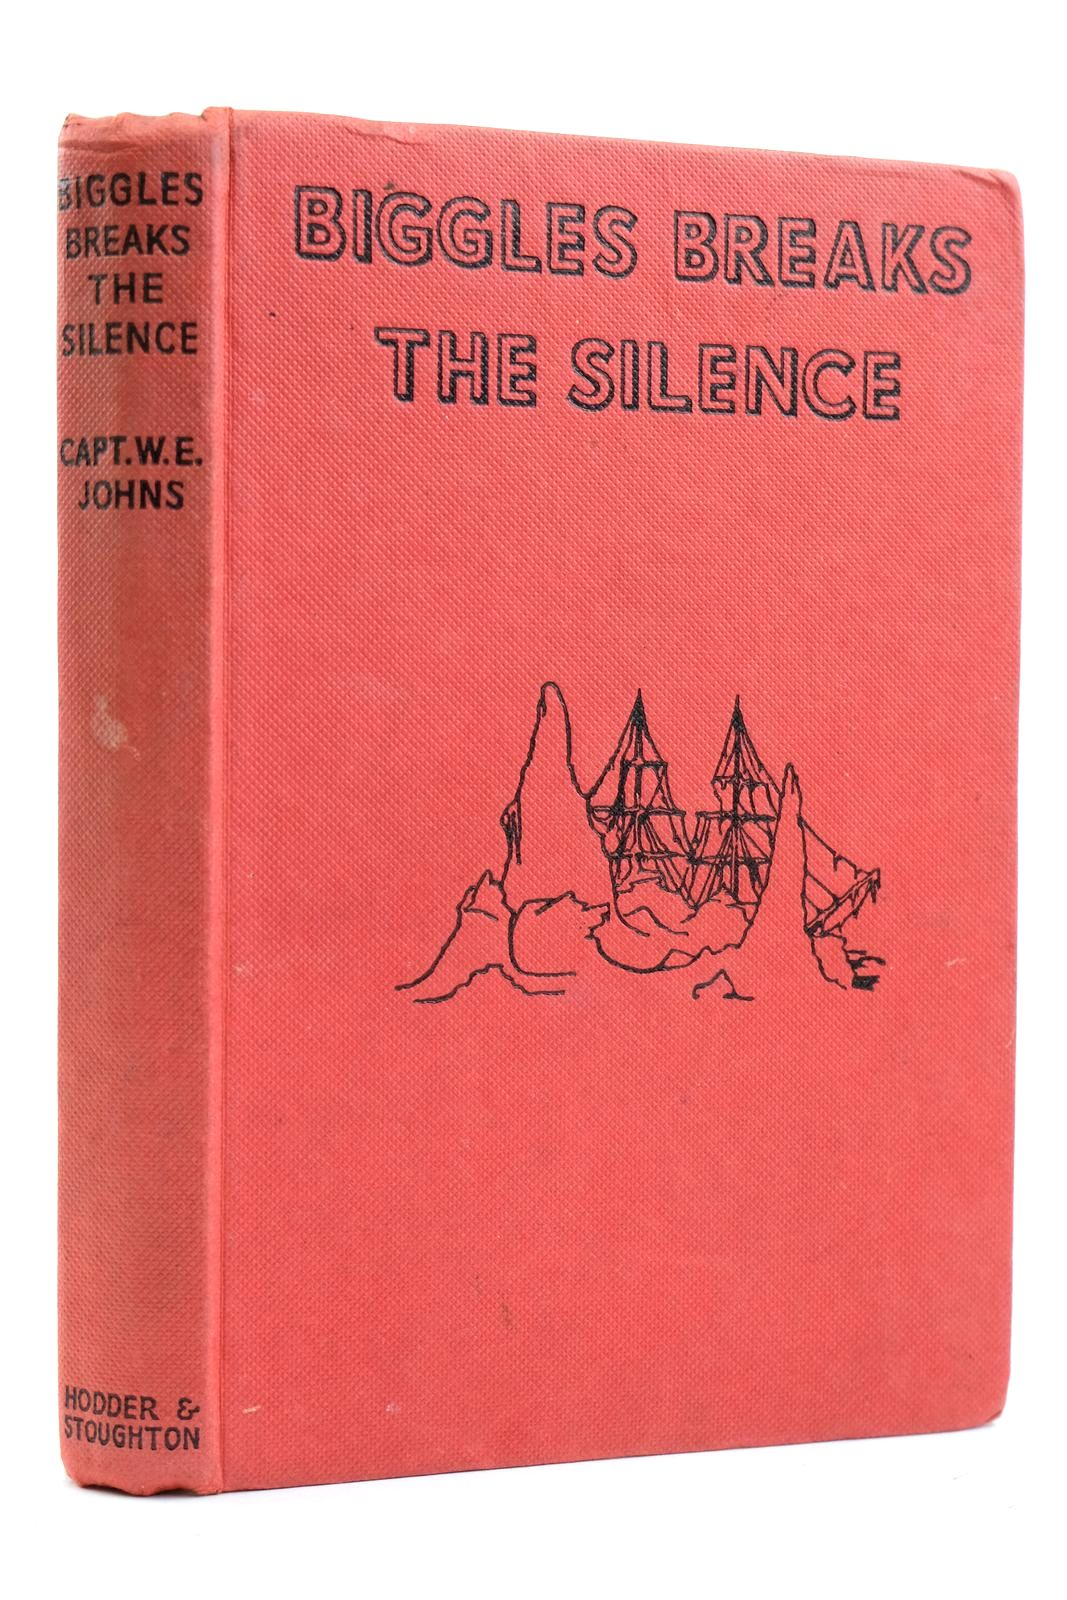 Photo of BIGGLES BREAKS THE SILENCE- Stock Number: 2131797